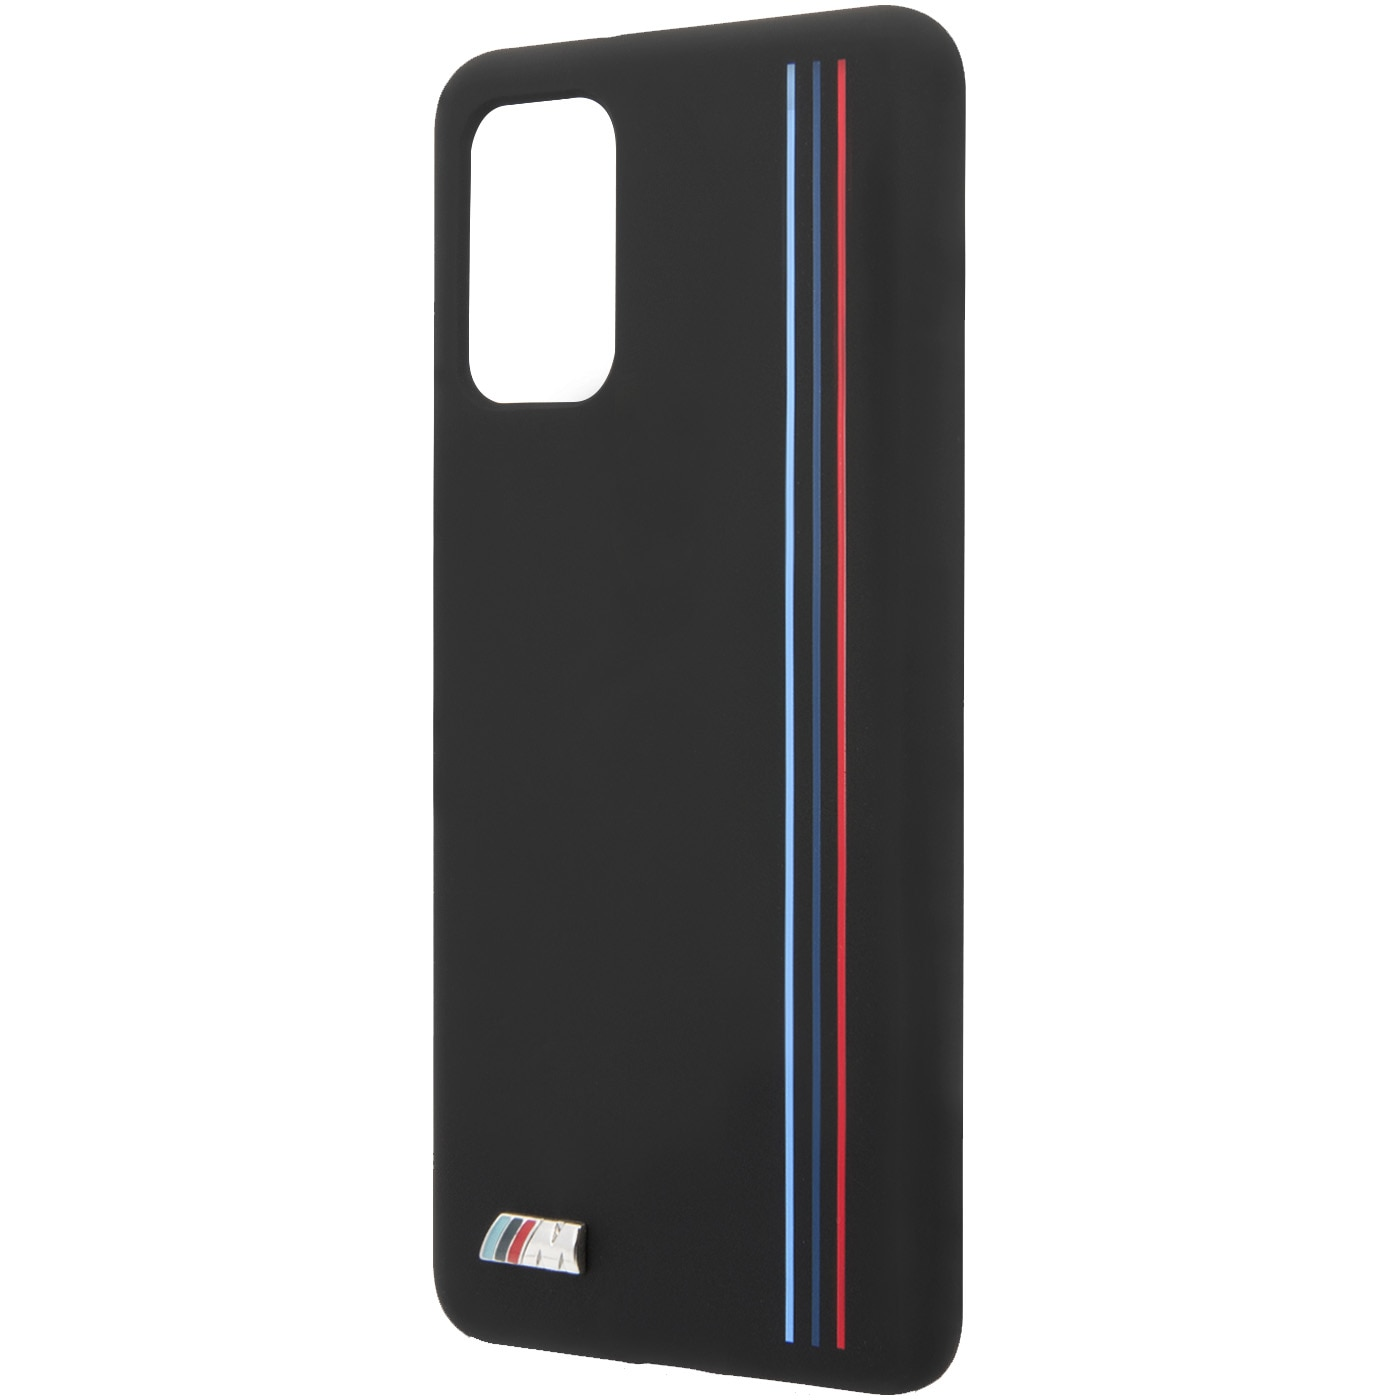 Fotografie Husa de protectie BMW Silicone Stripes M Collection BMHCS67SIVTBK pentru Samsung Galaxy S20 Plus, Black